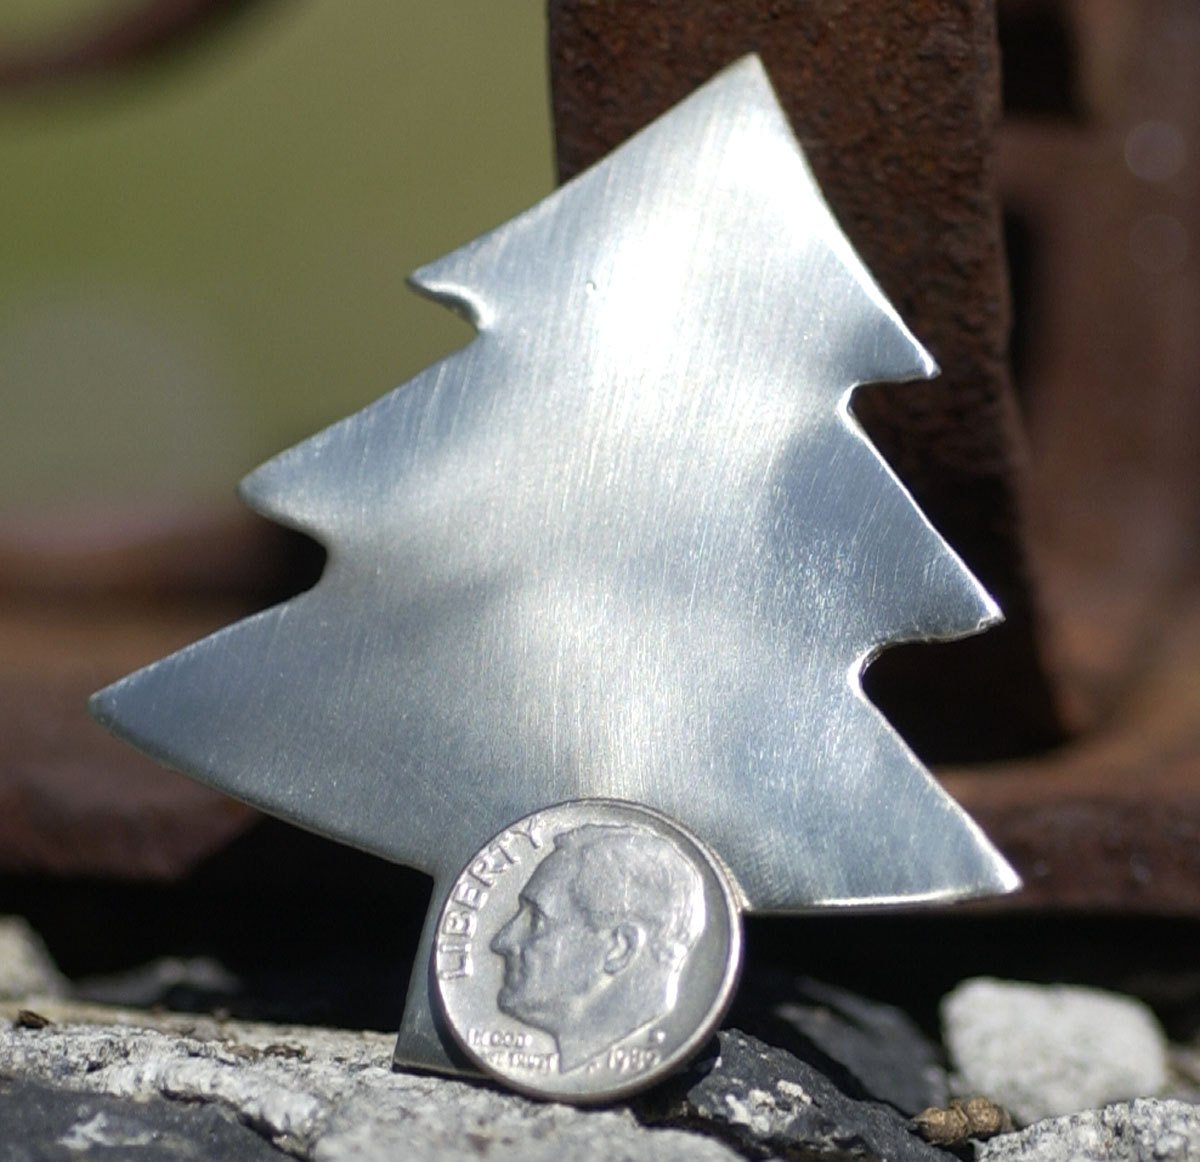 Nickel Silver Blank Large Christmas Tree 62mm x 57mm Metalworking Supply - Jewelry Blank - 2 Pieces